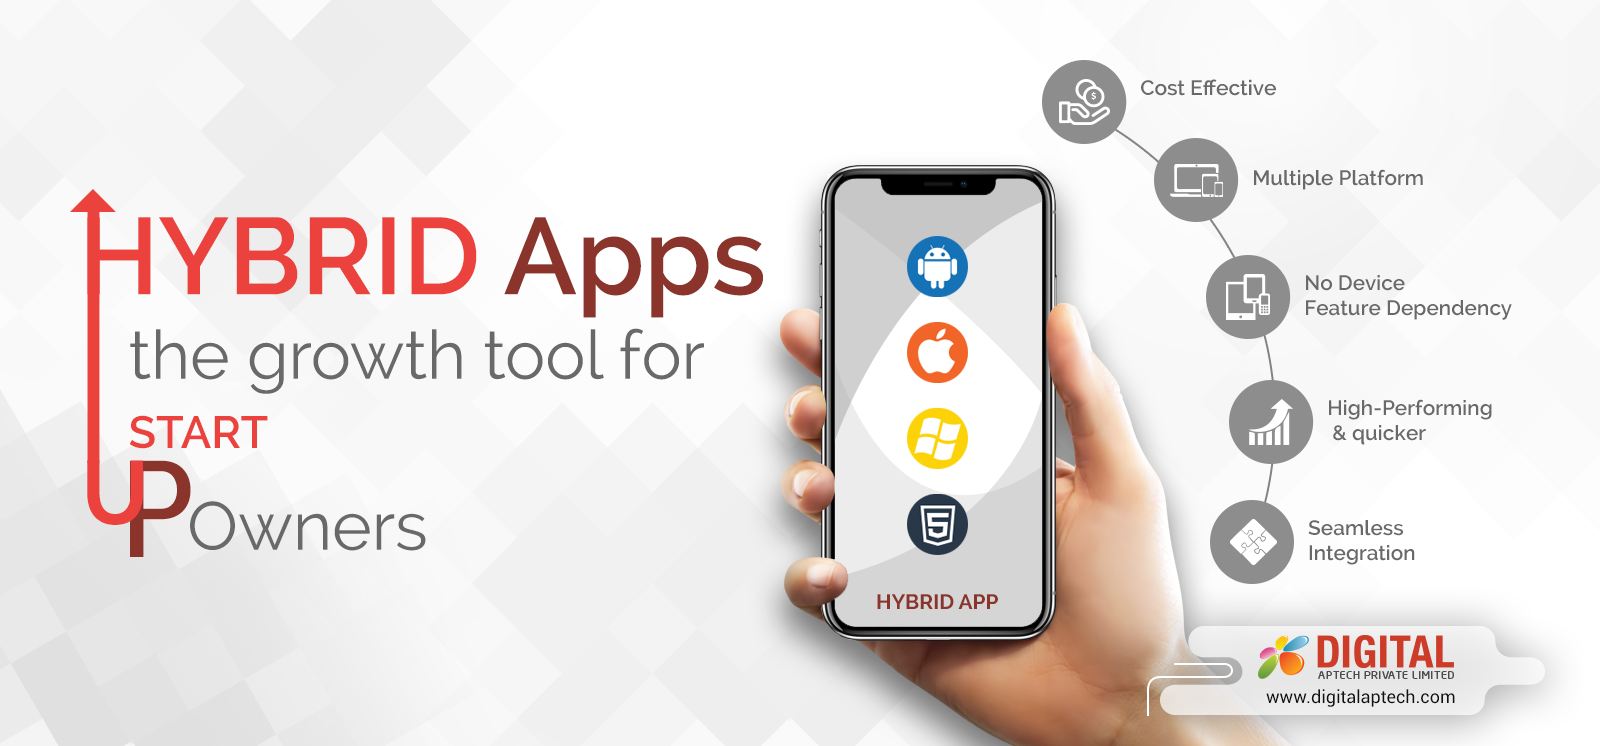 Why is Hybrid App Useful for Startup Business Owners?